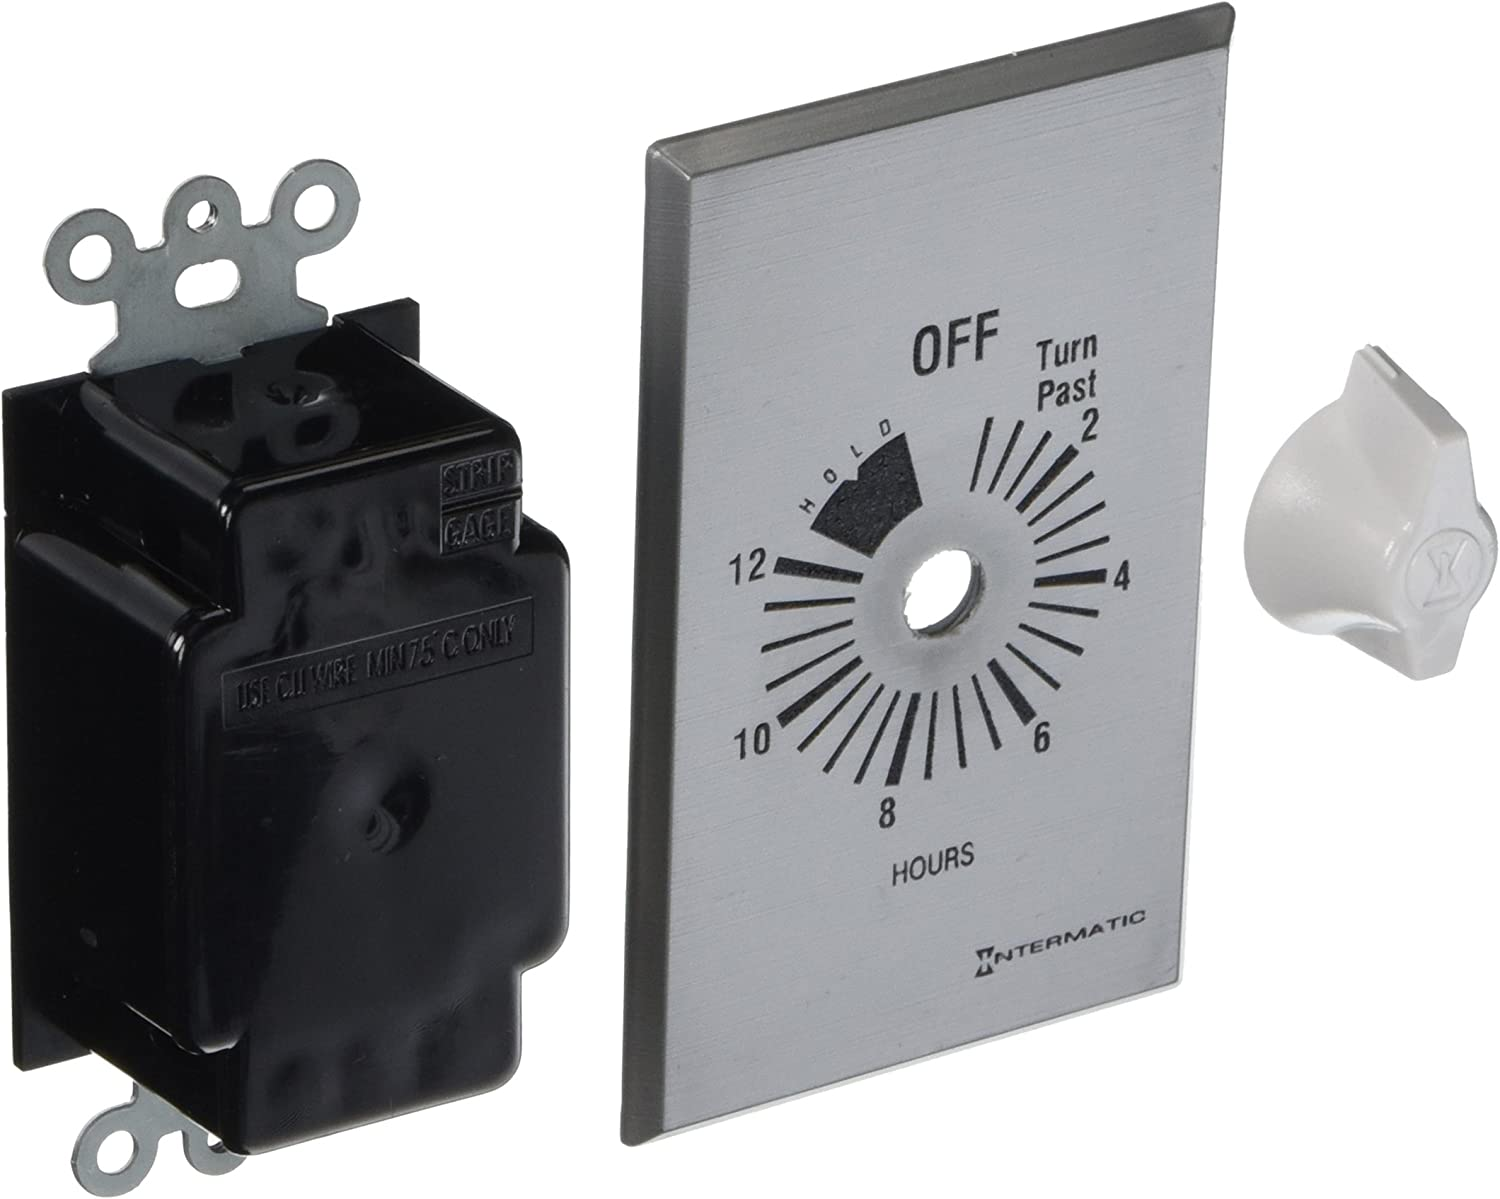 Intermatic FF312H 12-Hour Spring Loaded Wall Timer Brushed Metal Finish